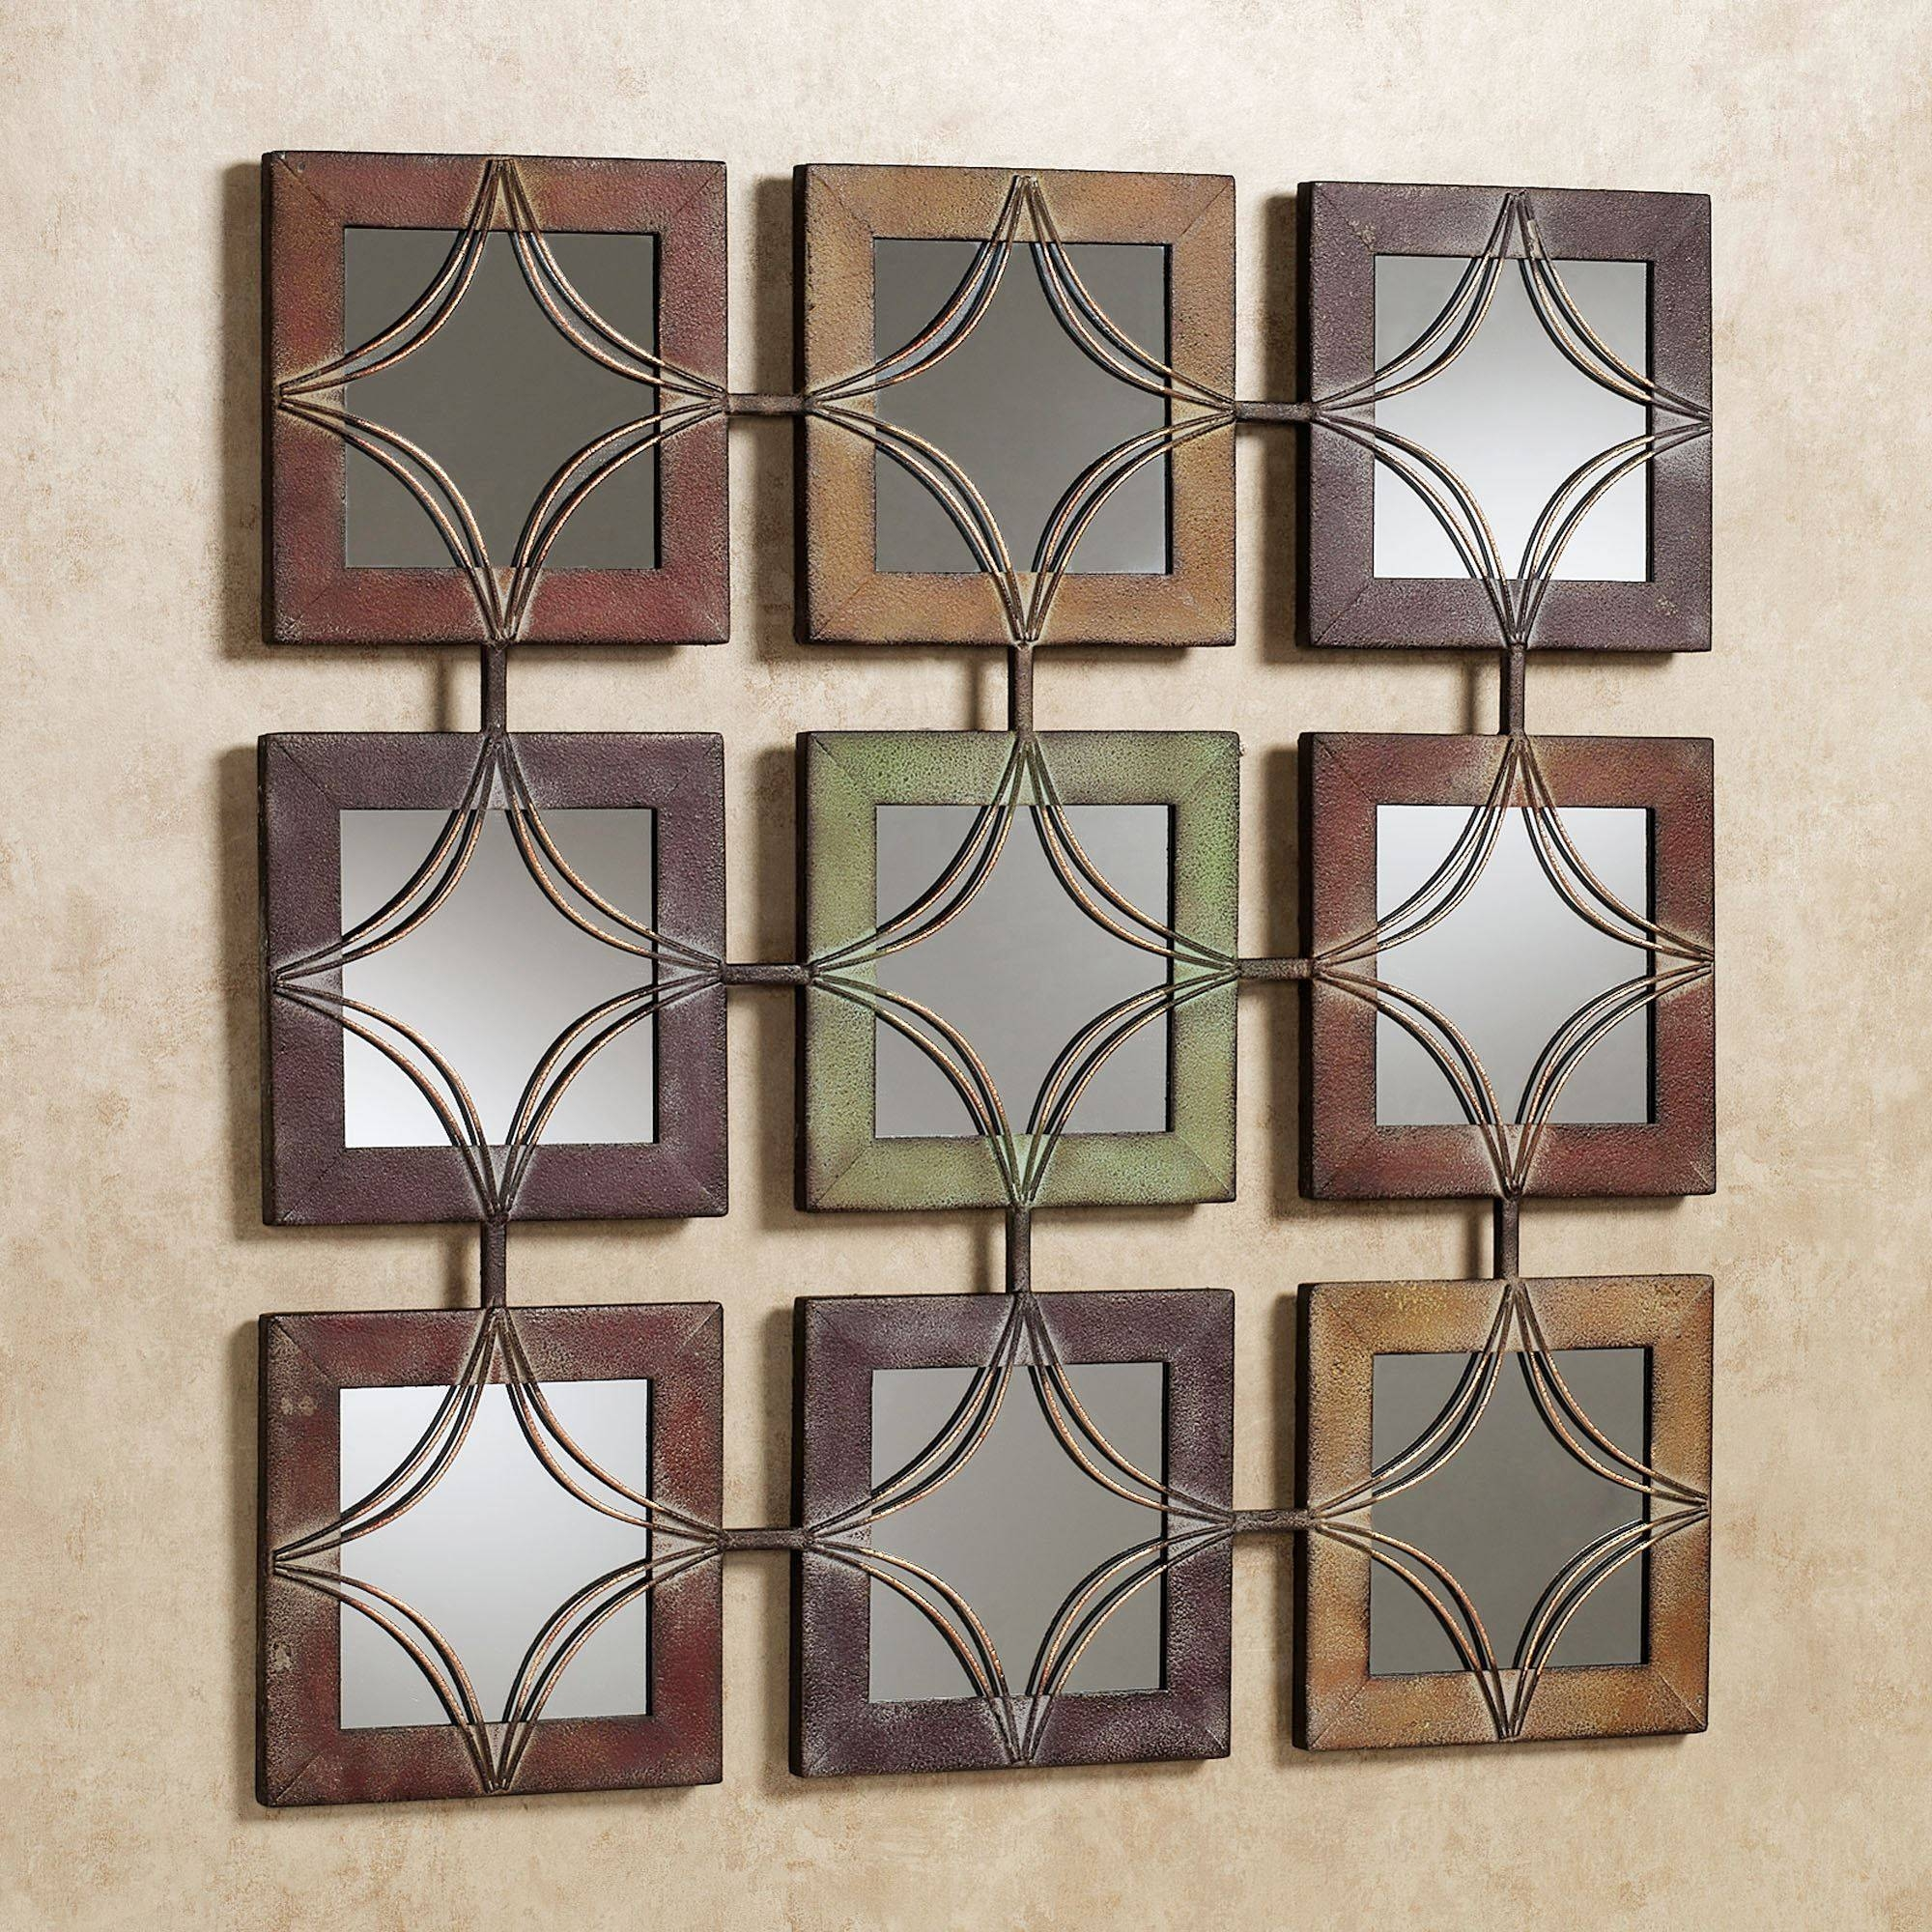 Domini Mirrored Metal Wall Art Intended For Most Recent Metallic Wall Art (View 7 of 25)